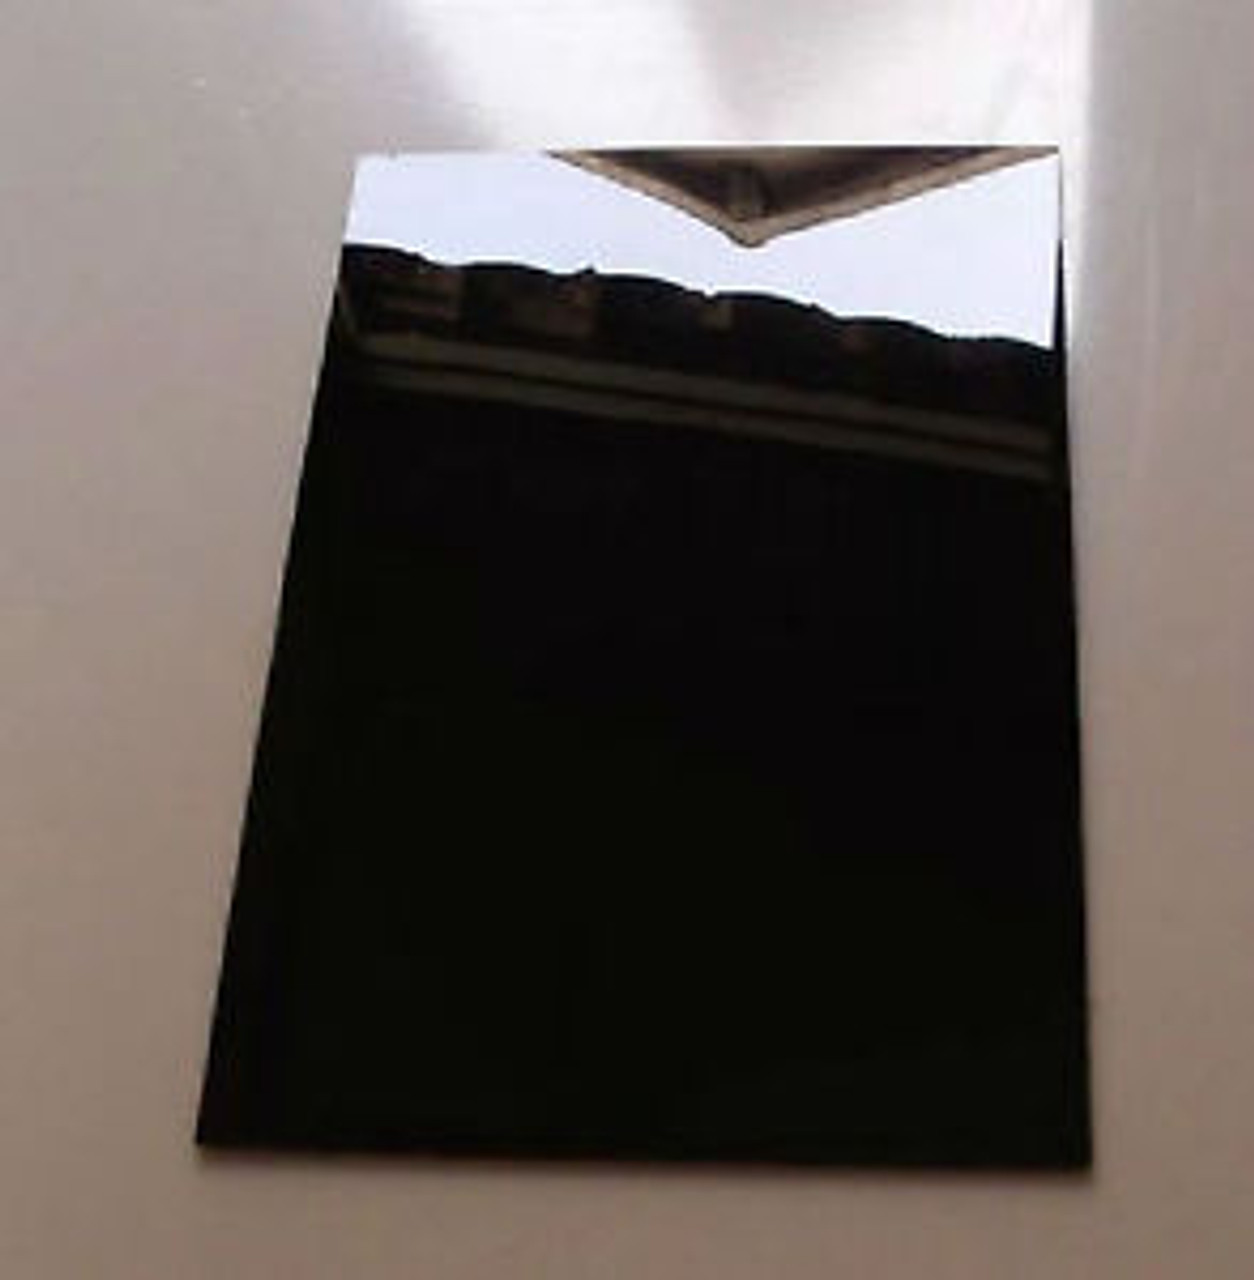 "4' x 8' x 1/8"" Opaque Black Acrylic Sheet - Glossy"